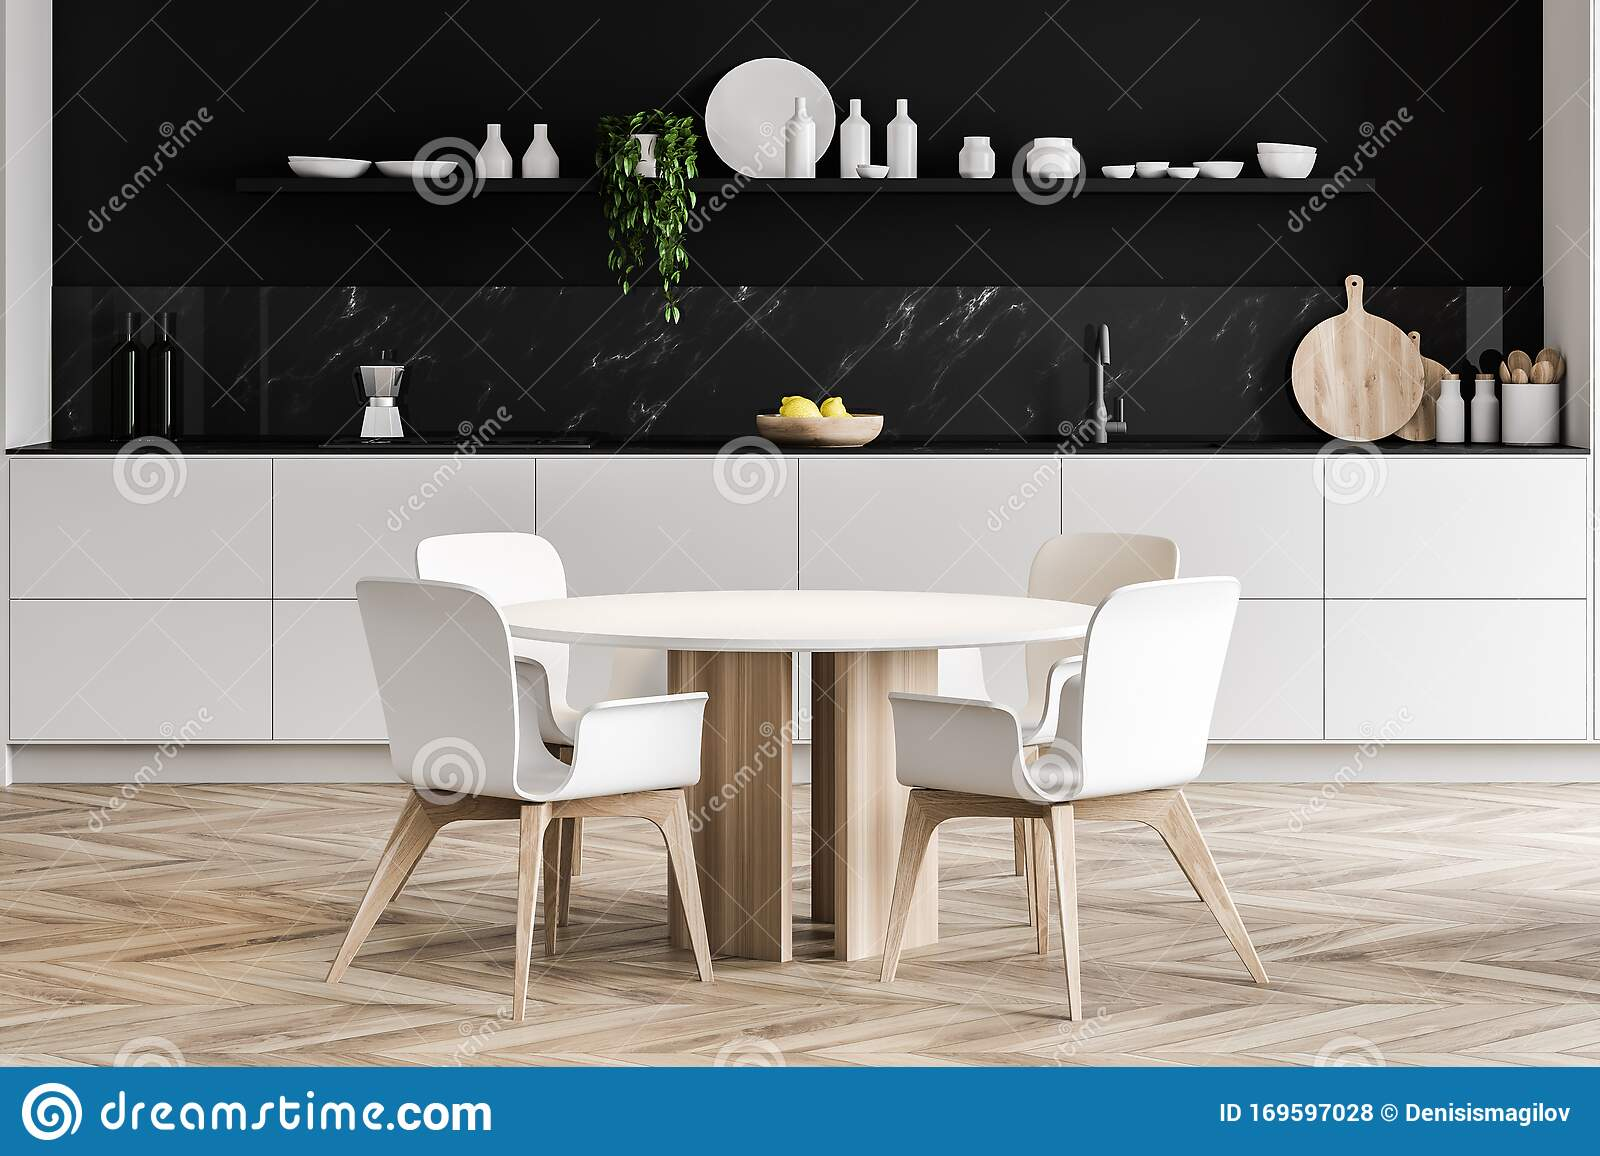 Round Dining Table In Black Marble Kitchen Stock Illustration Illustration Of Furniture House 169597028